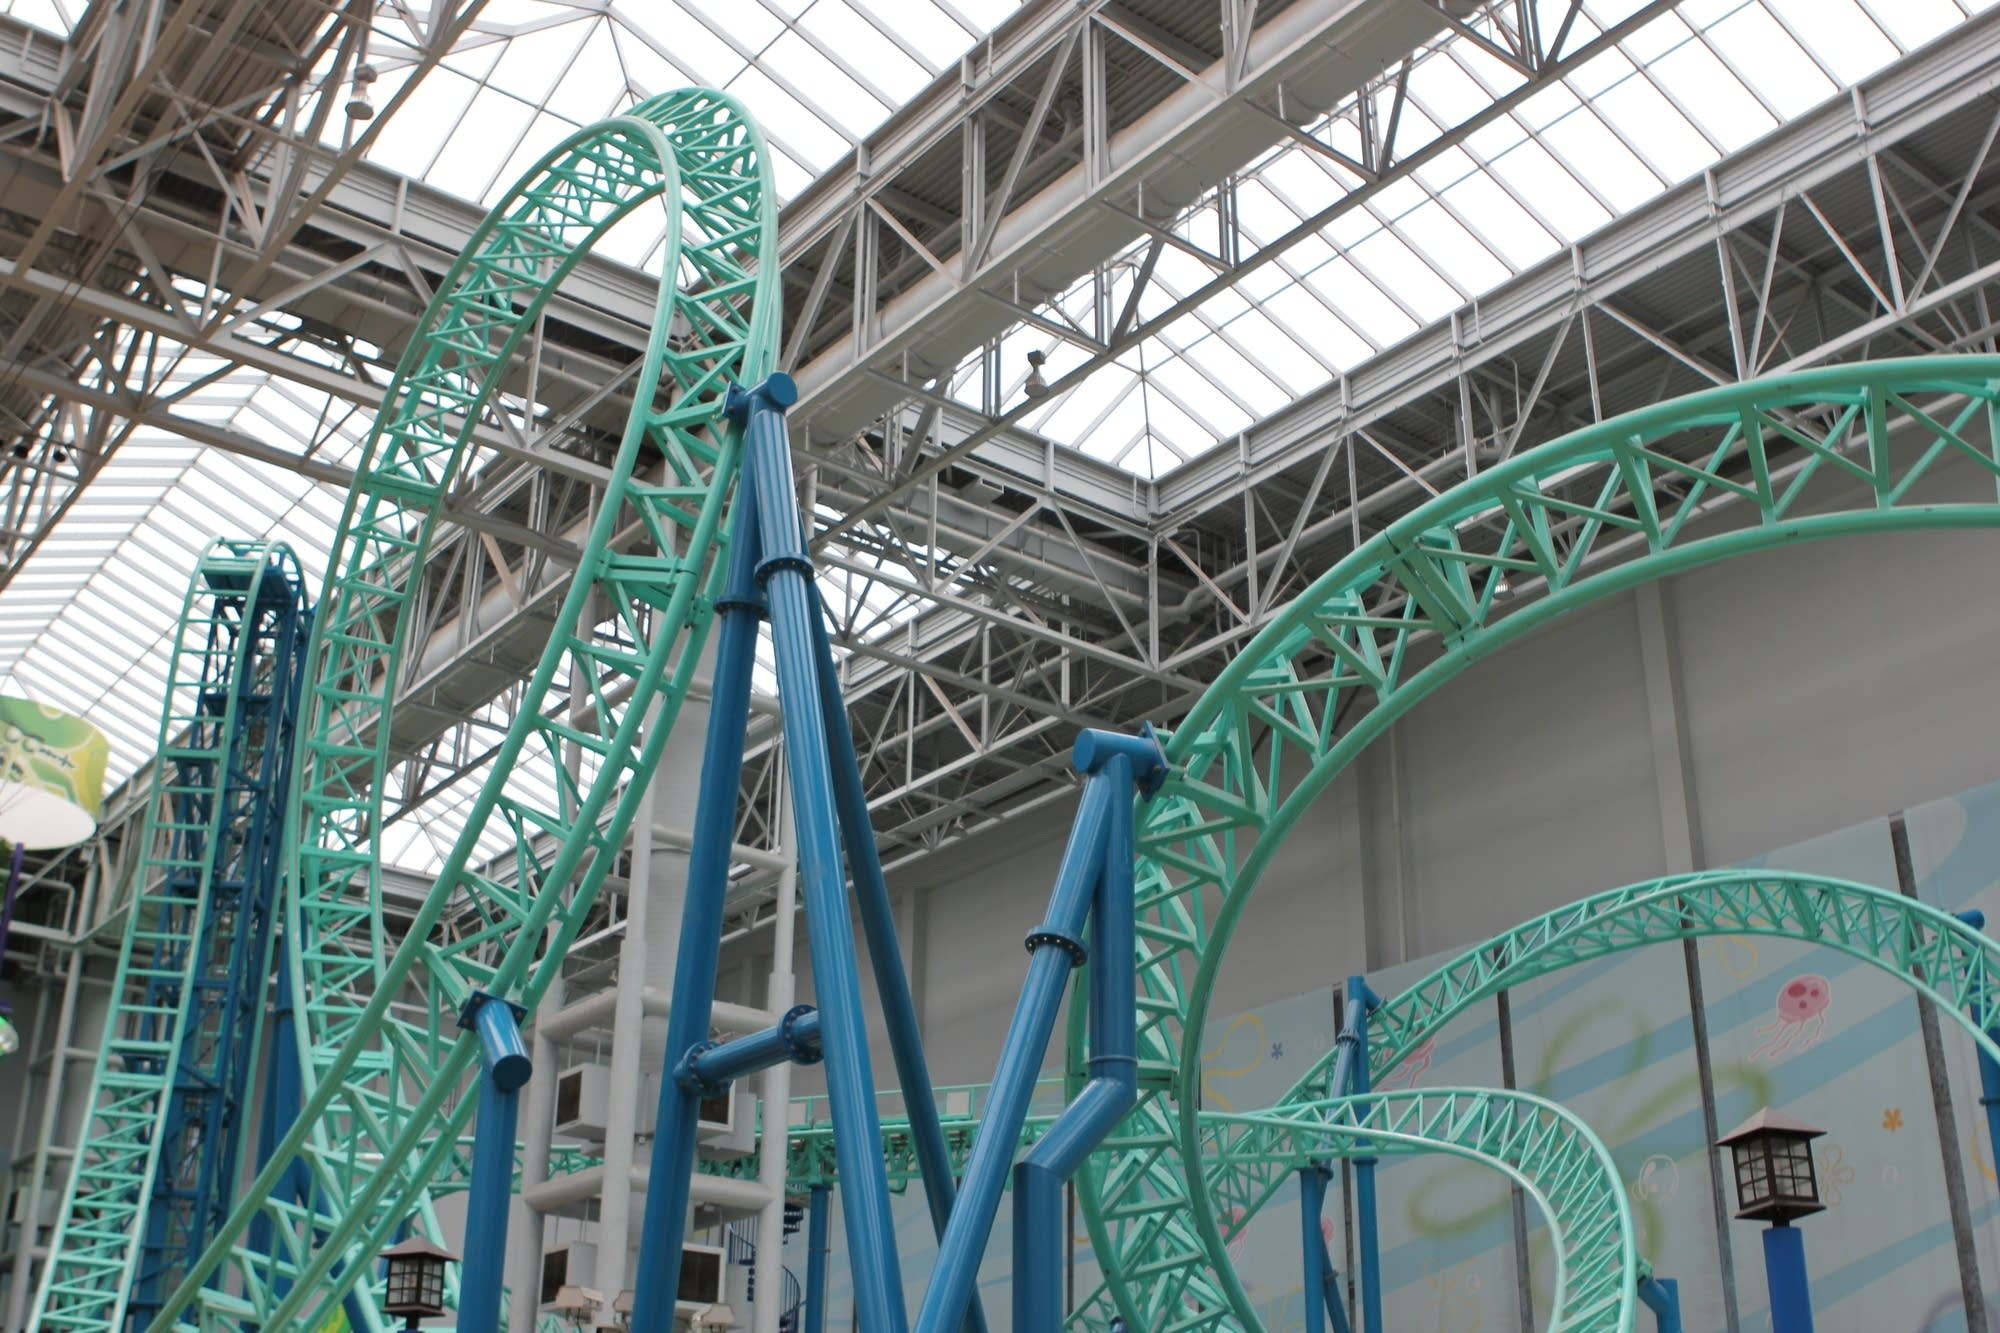 Roller coasters: from dream to extreme